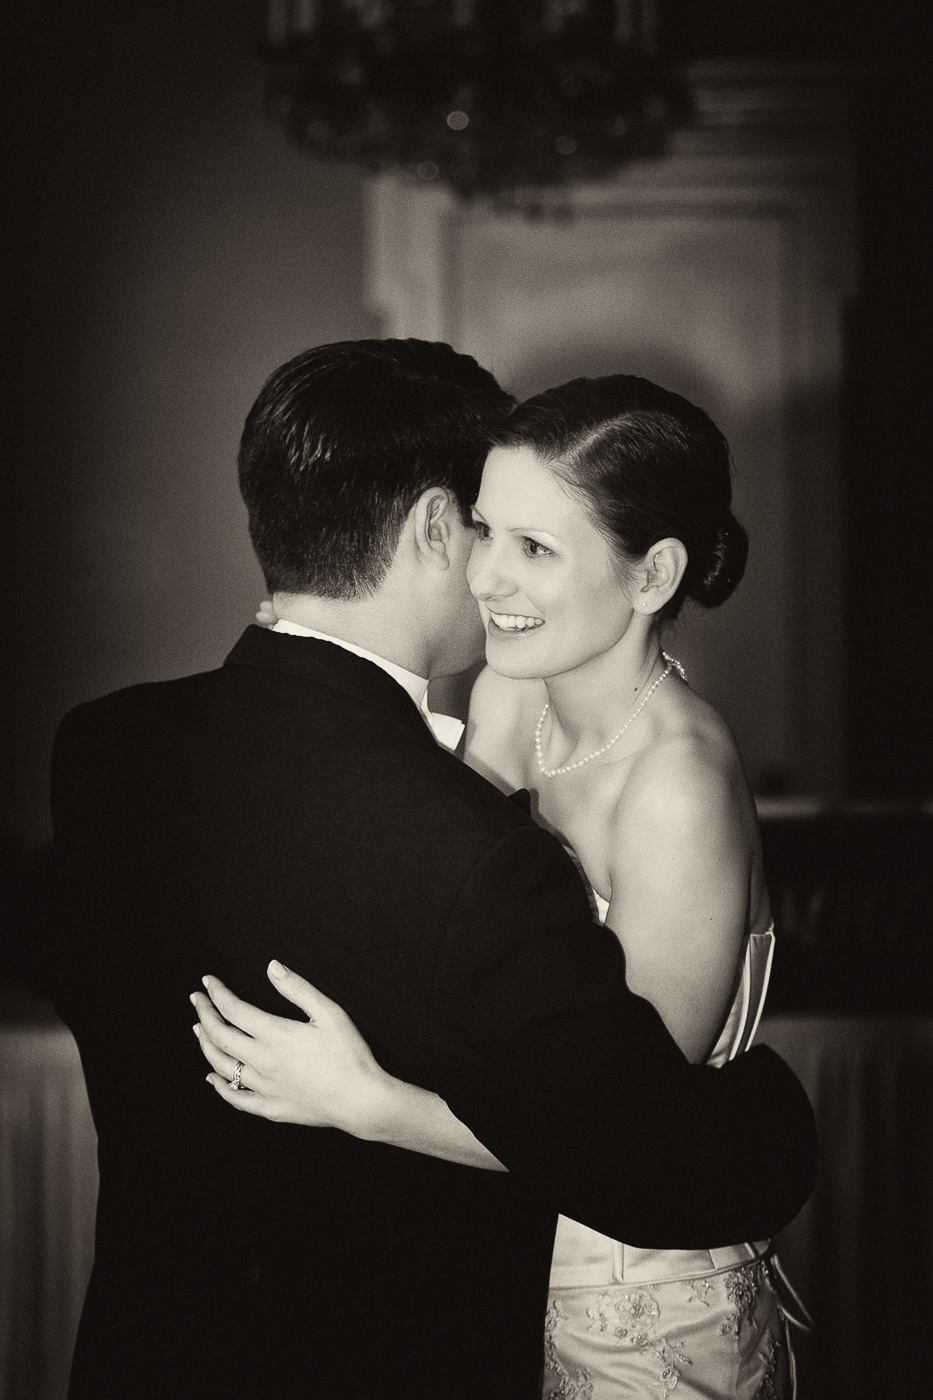 One of my favorite shots. The rest of the reception is a blur! Thank goodness I have photos!